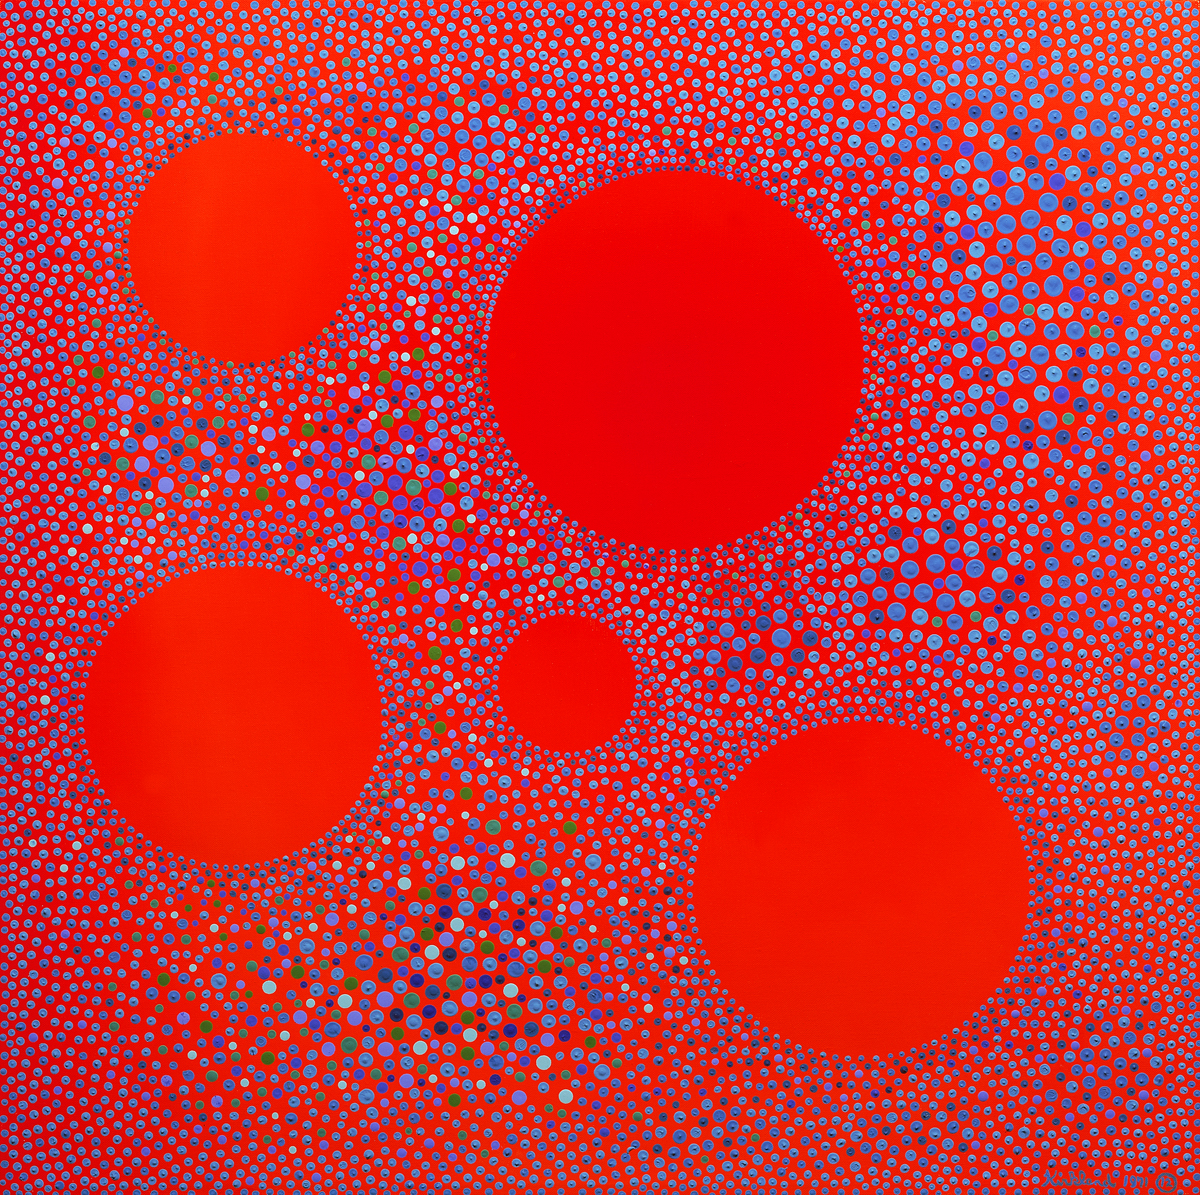 Five Red-Orange Suns in Space